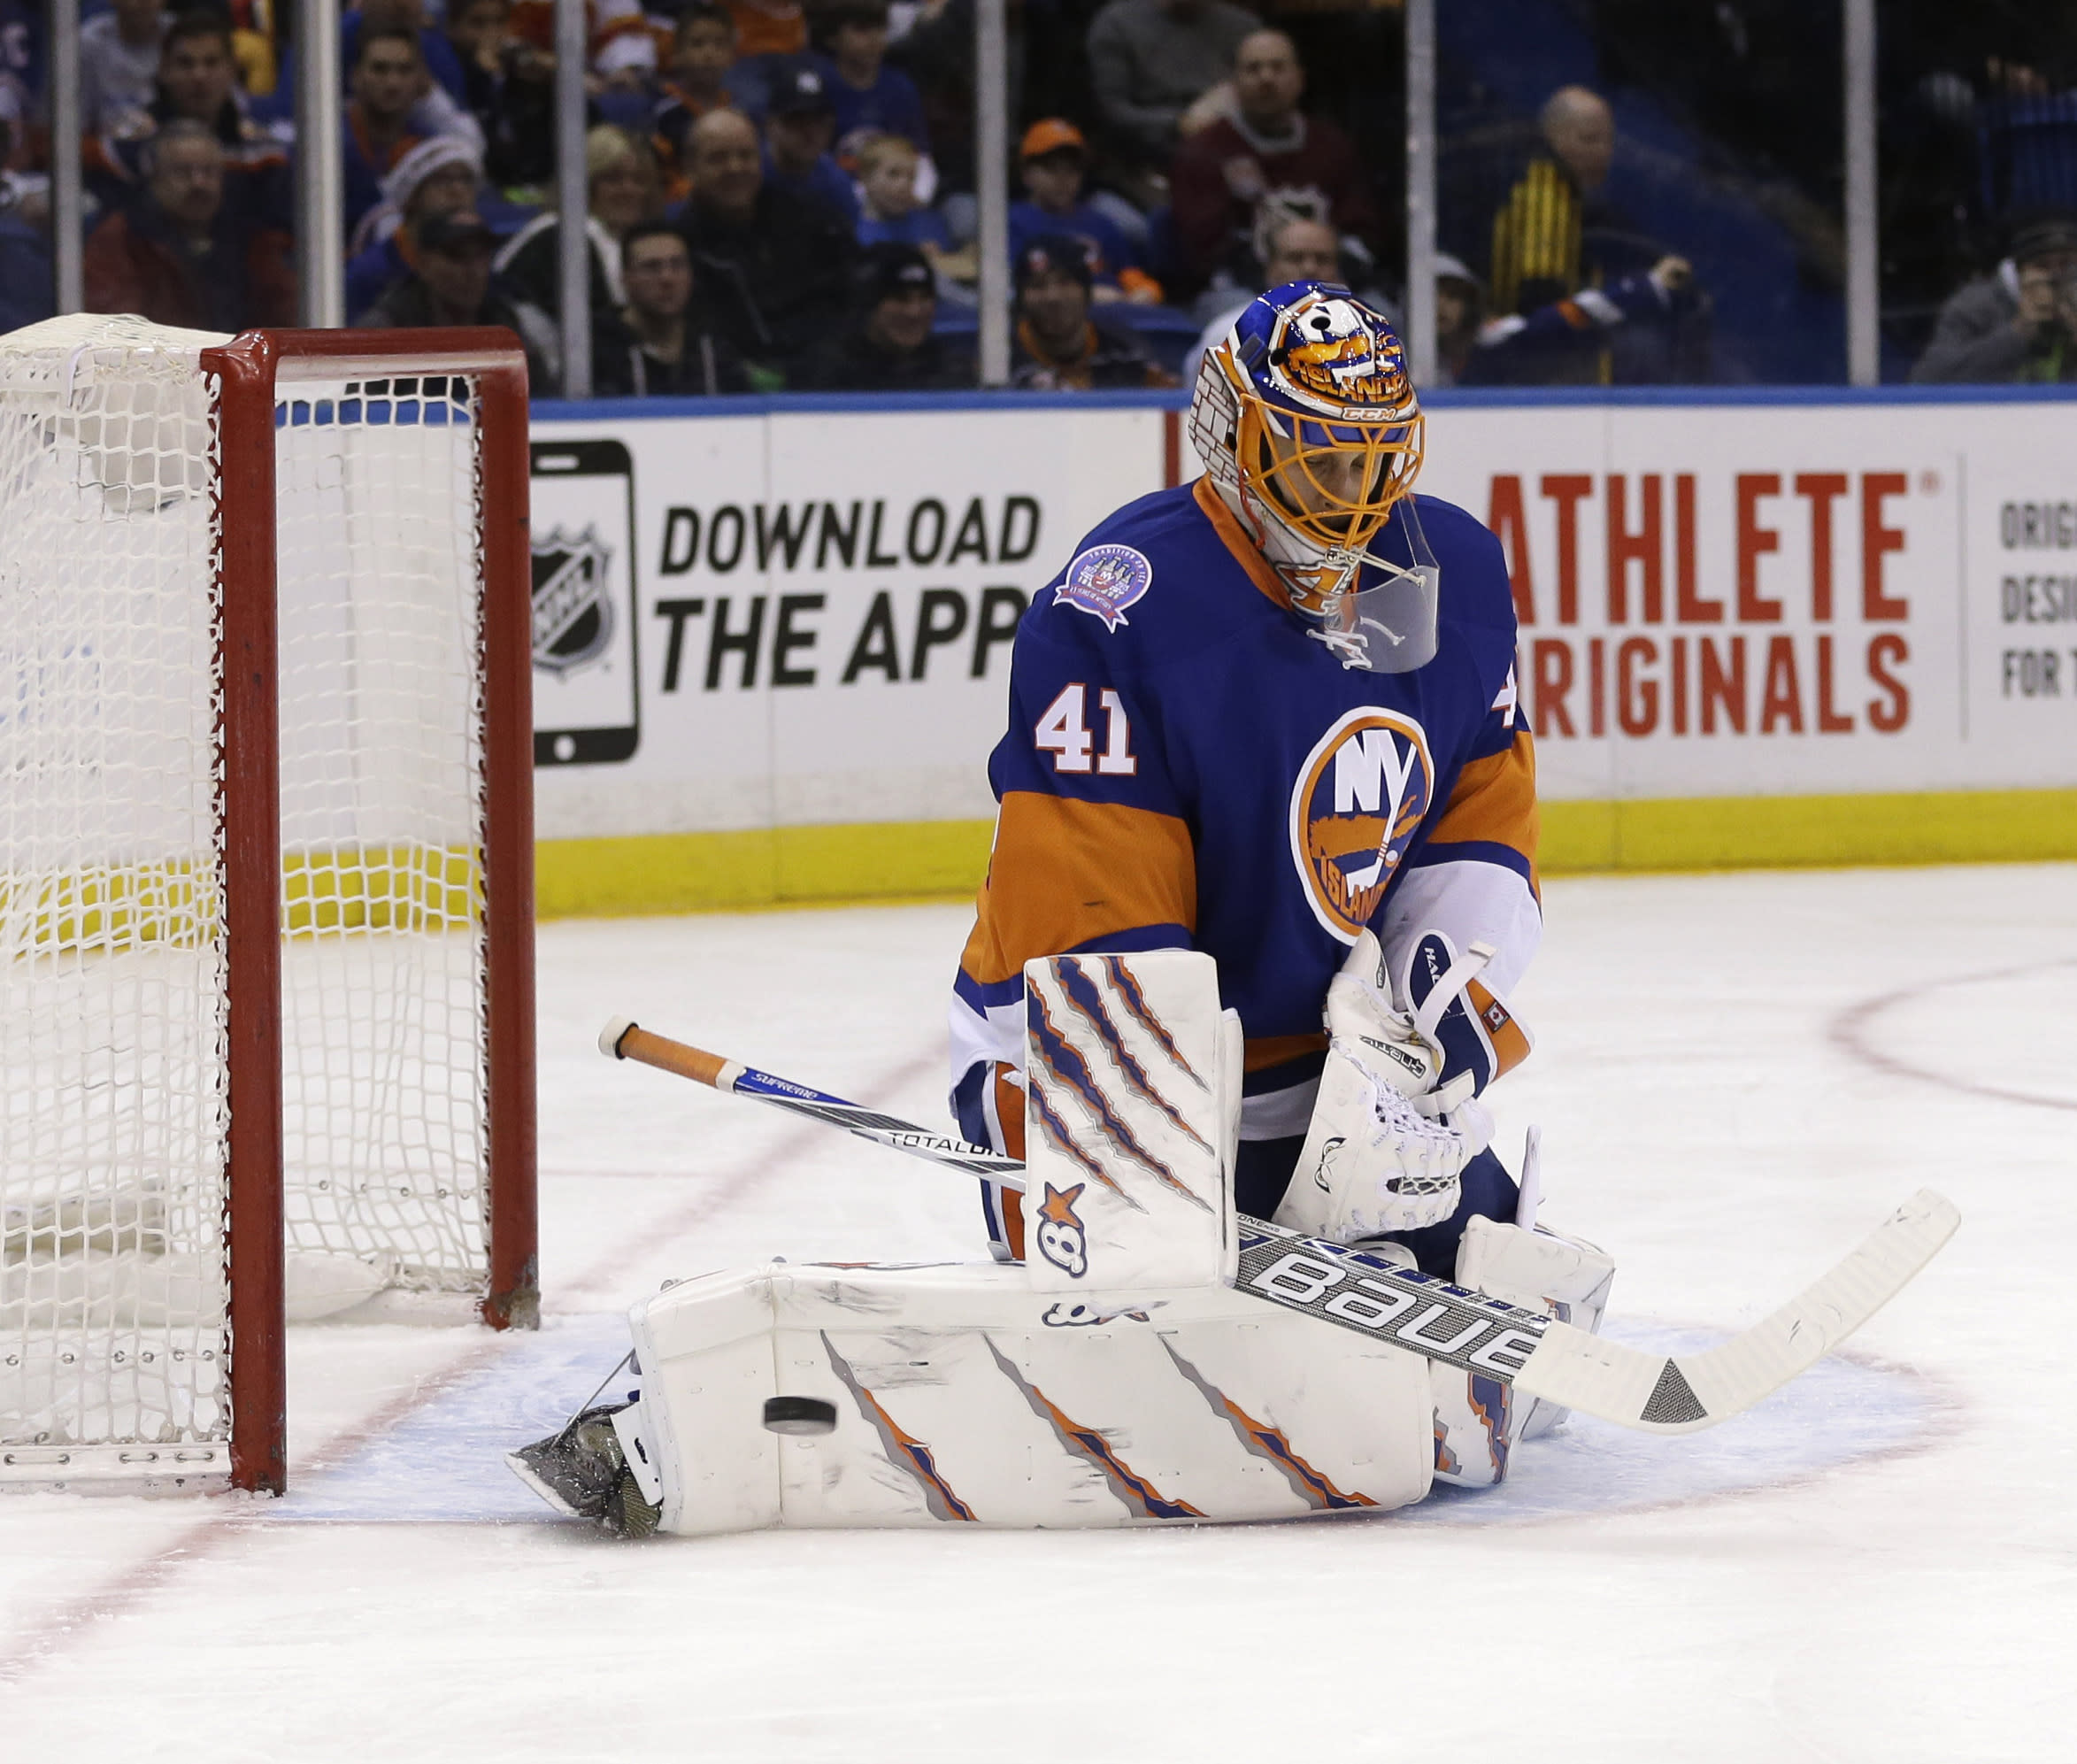 Halak tops Flames to set Islanders' single-season win record